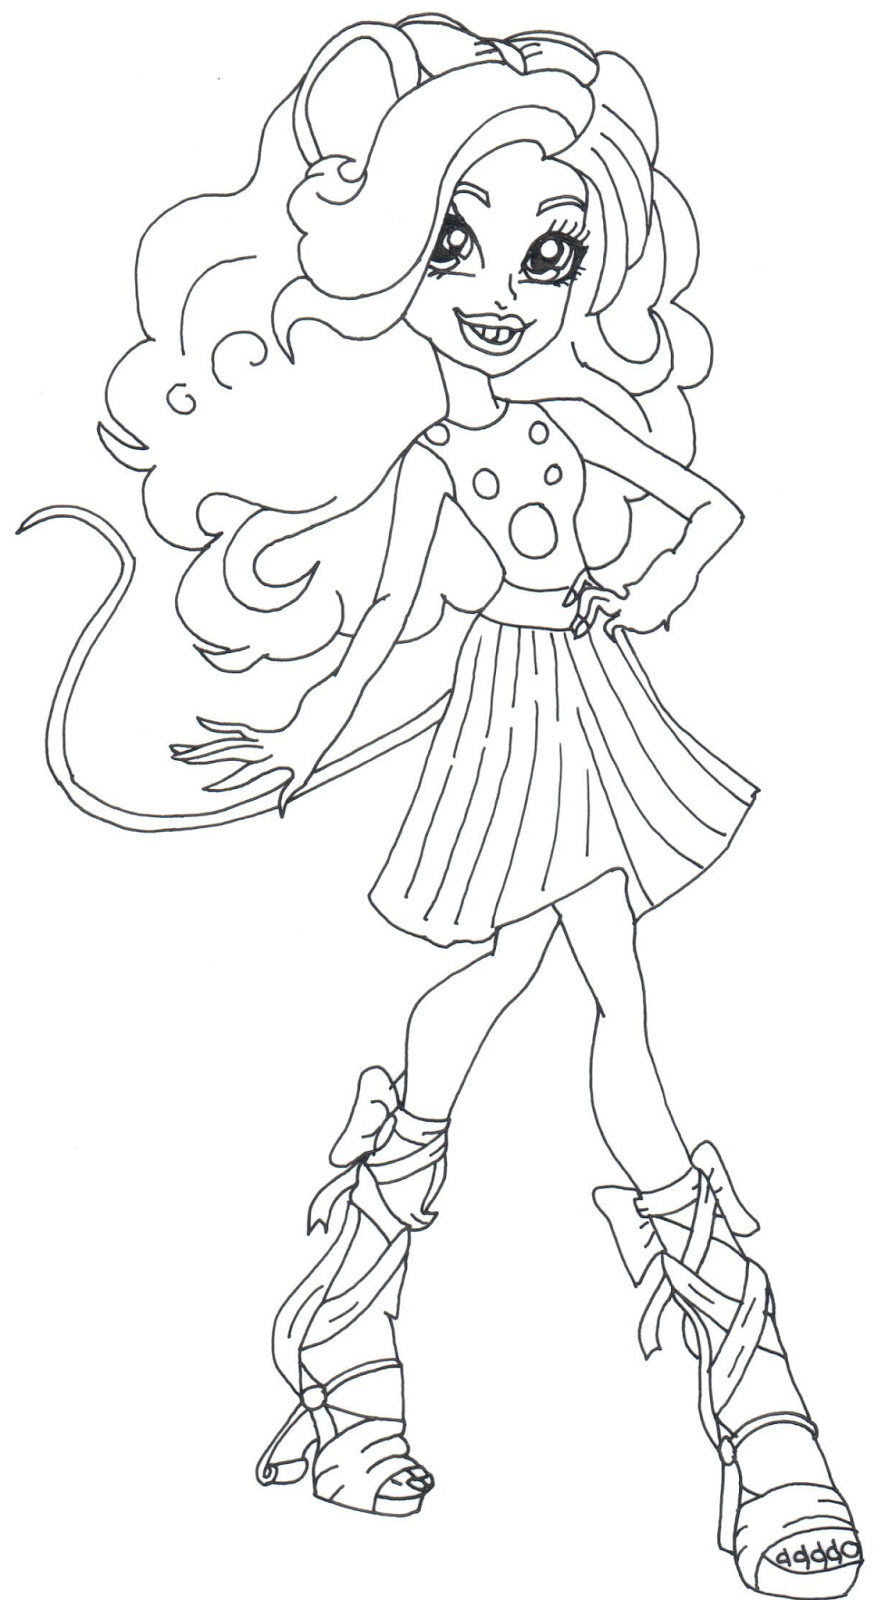 Free Printable Monster High Coloring Pages: October 2015